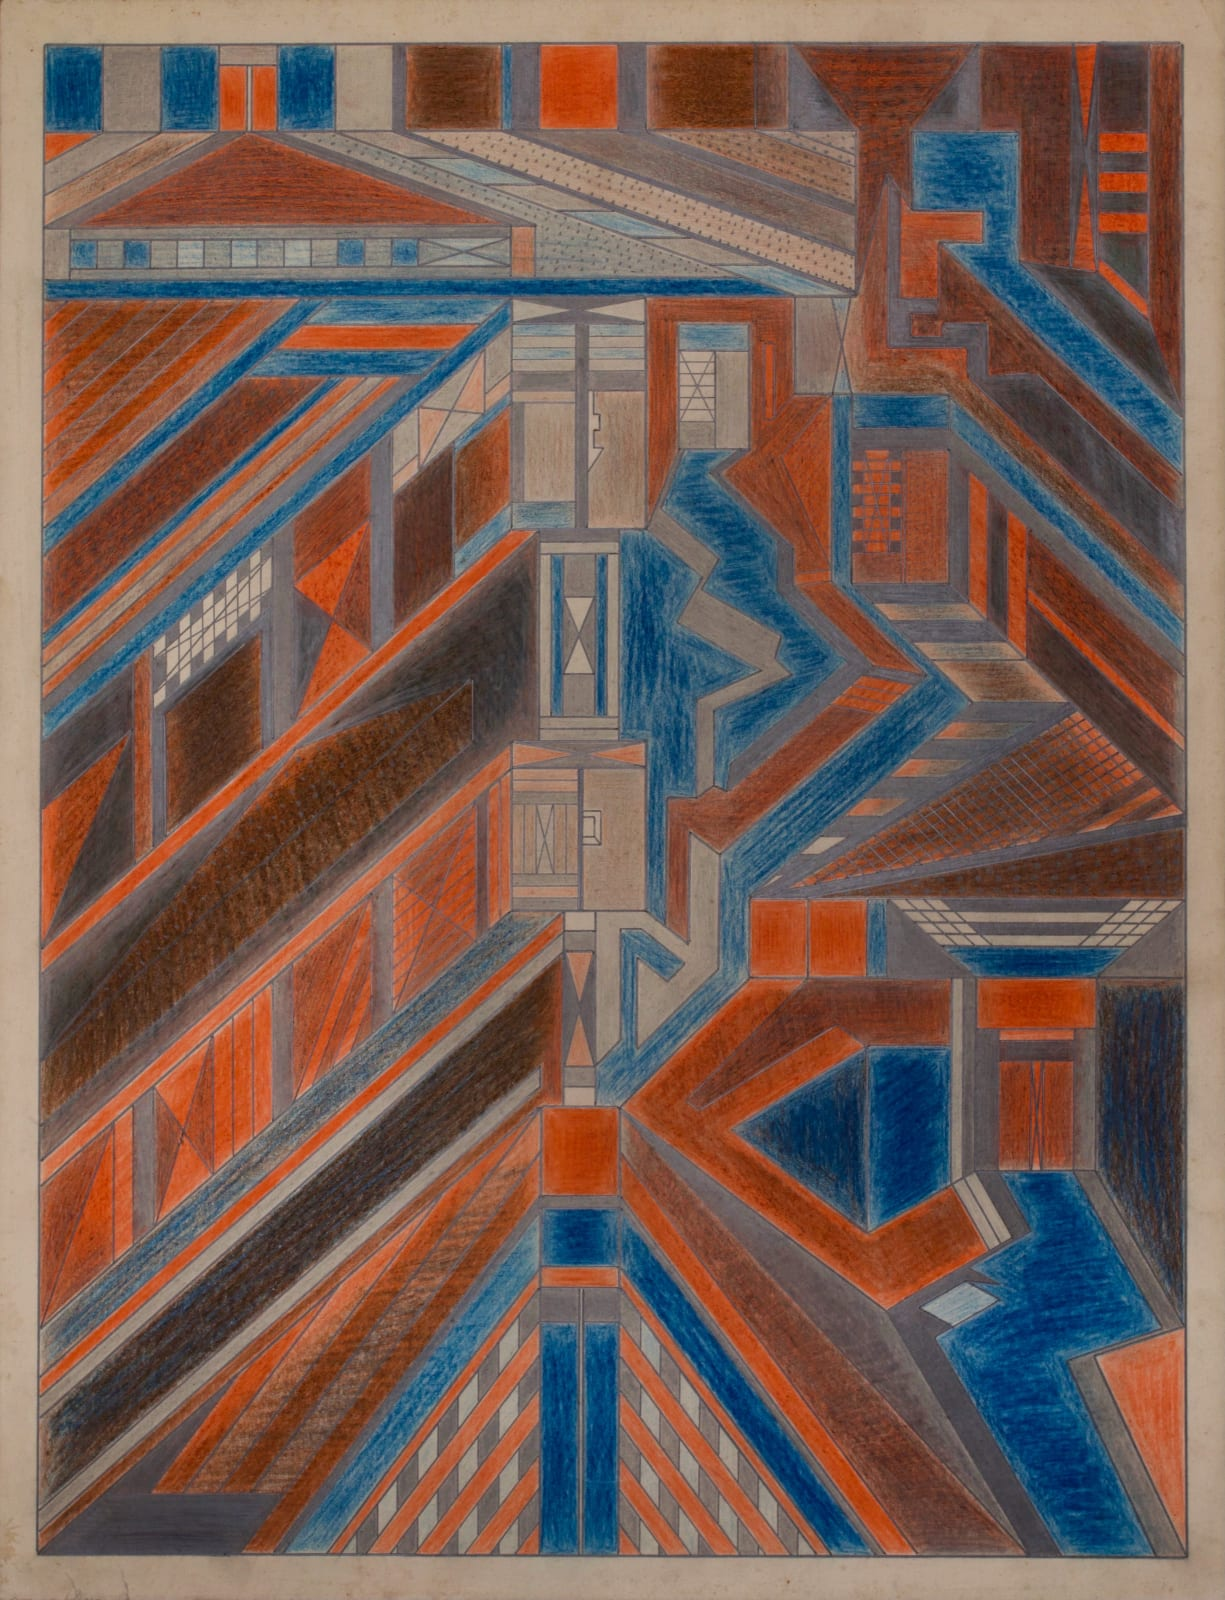 Untitled, ca. 1930 - 55 Colored pencil and graphite on paper 21 x 17 1/2 in. 53.3 x 44.5 cm. (DG 48)